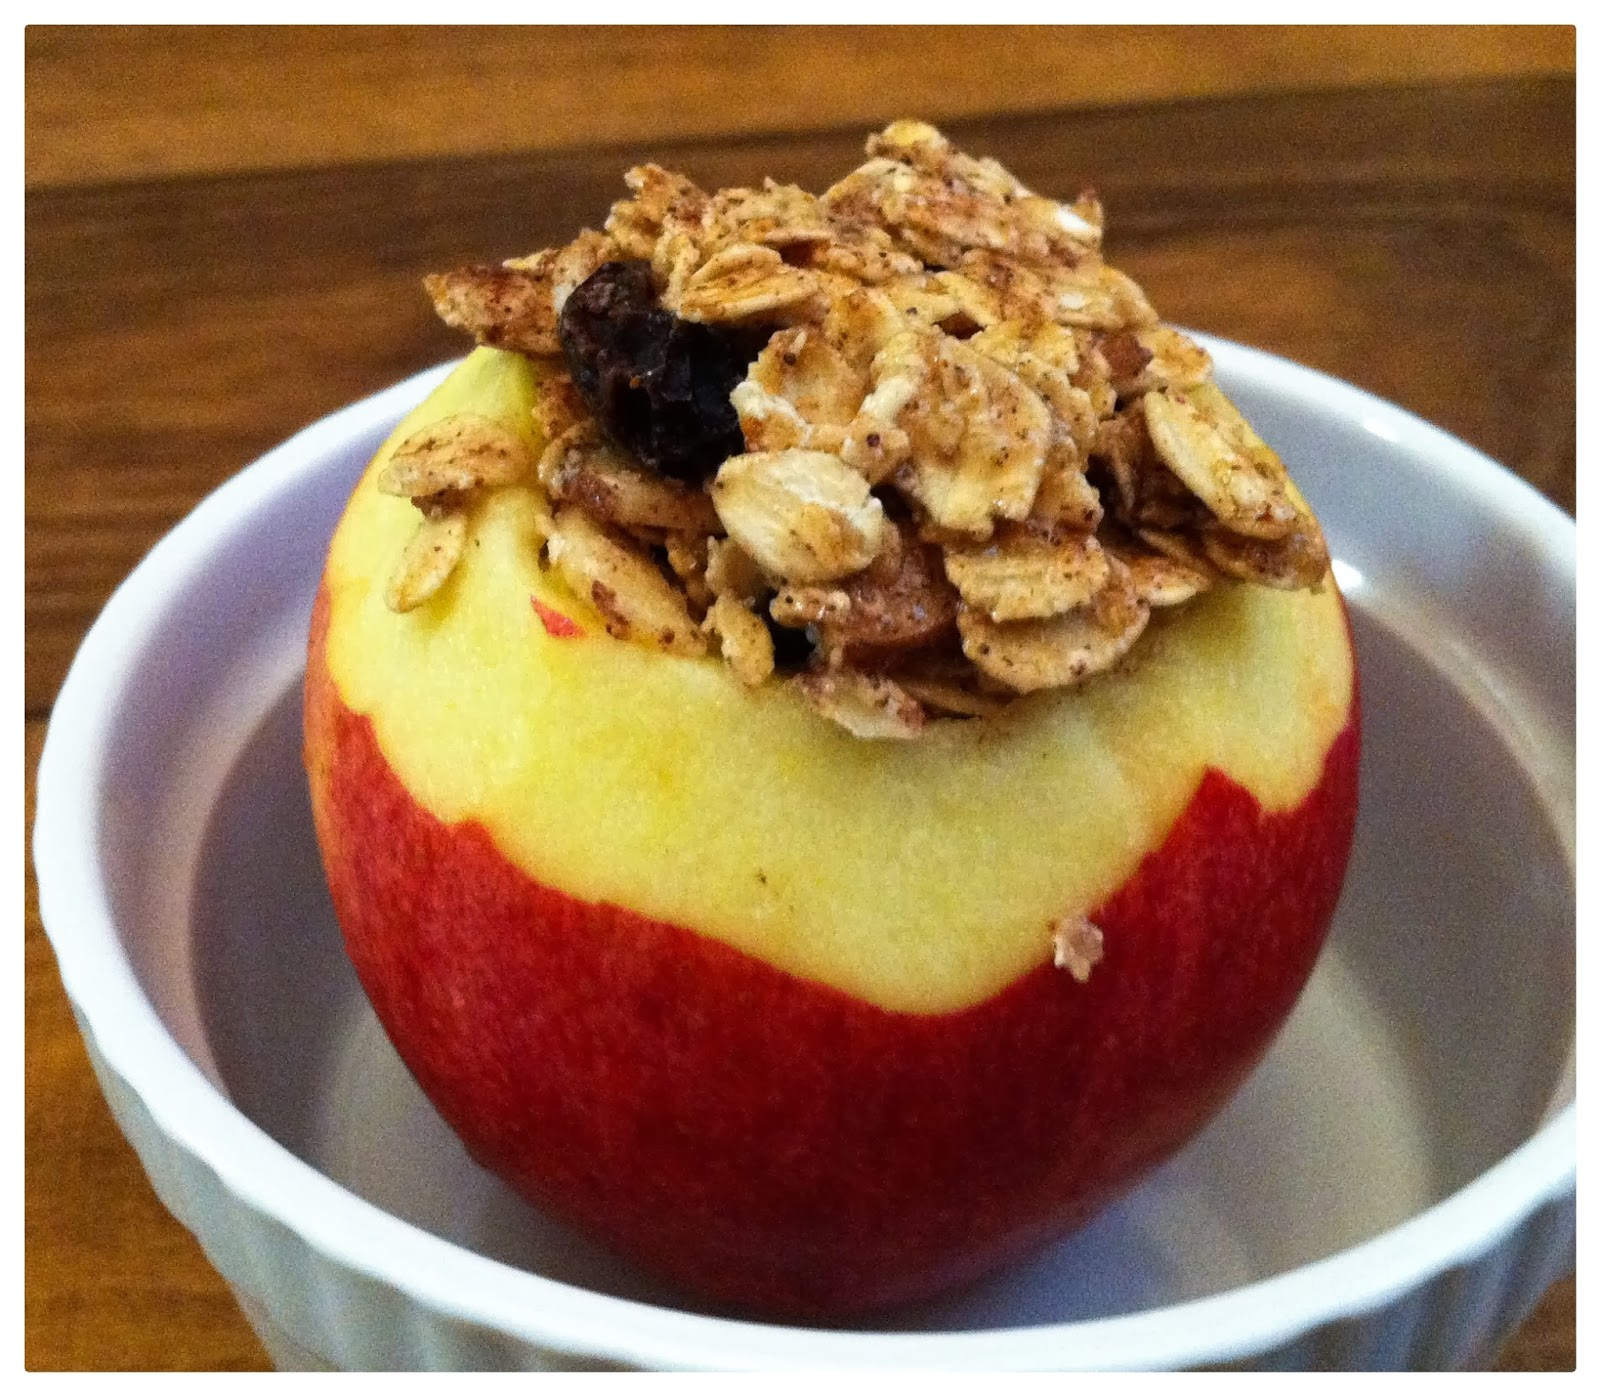 Courting Contentment: Baked Stuffed Apples